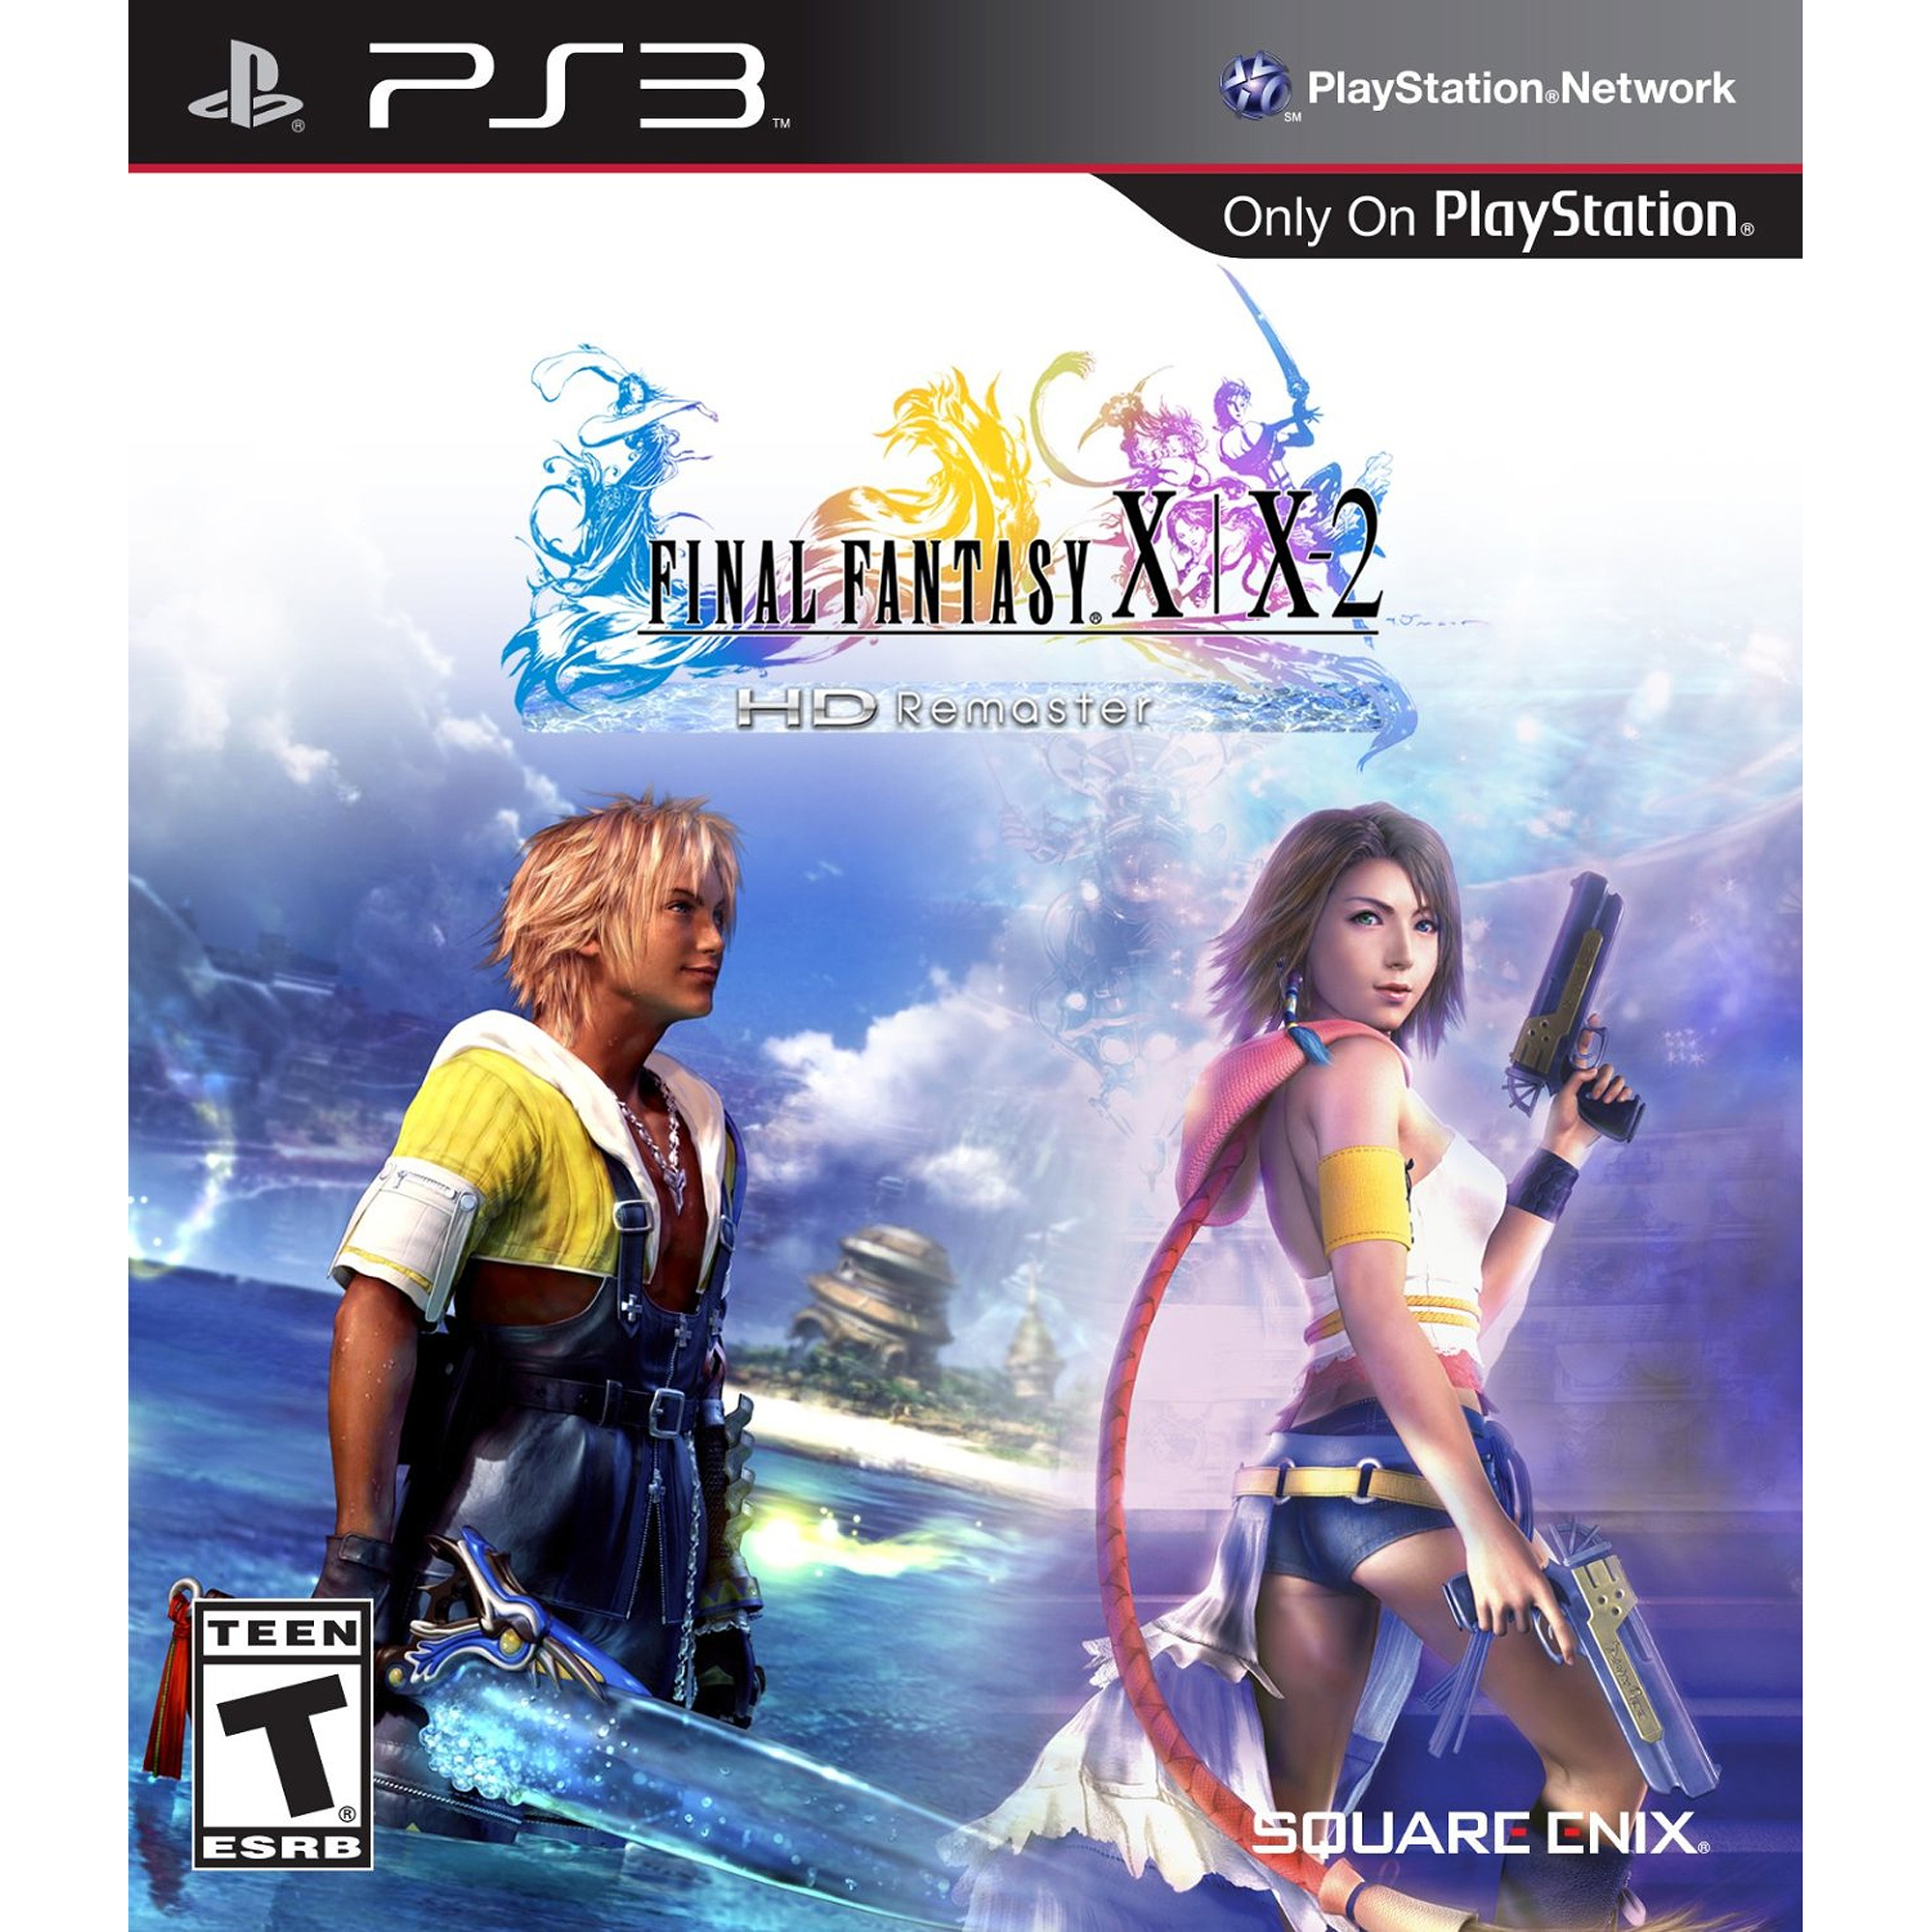 Final Fantasy X/X-2 HD Remaster (PS3) - Pre-Owned